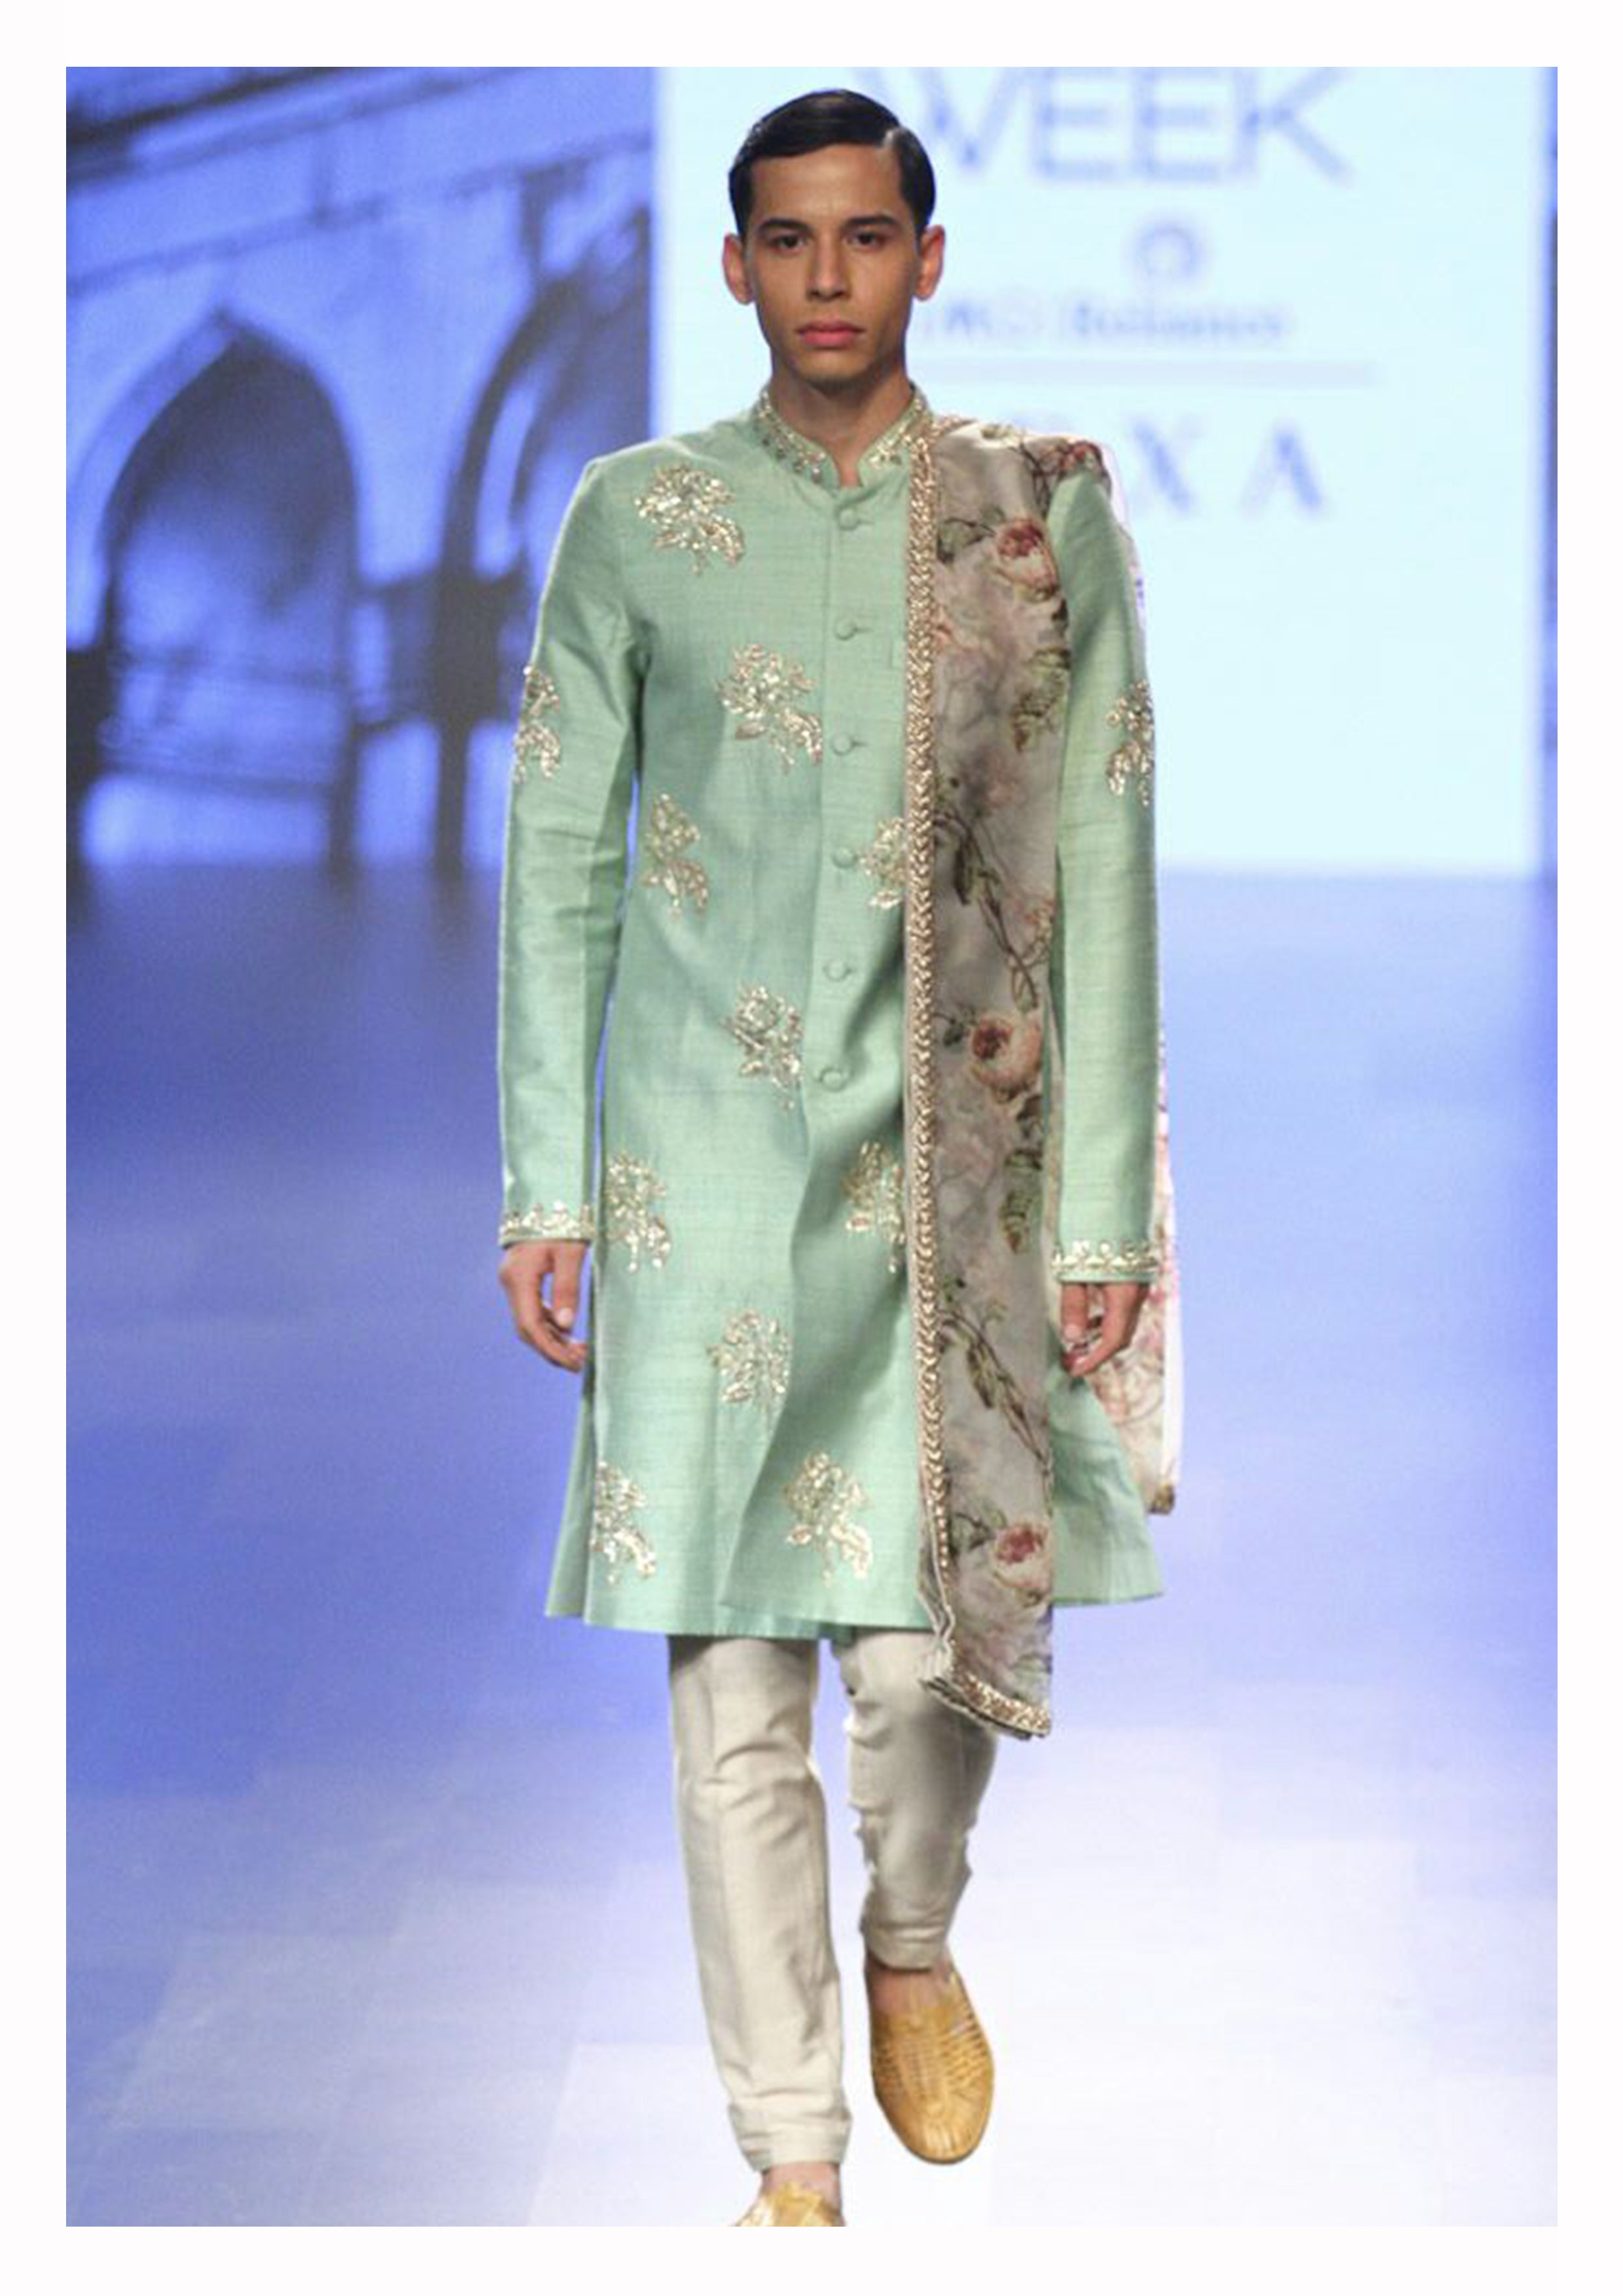 Pastel Sherwani with Floral Dupatta - The Grand Trunk